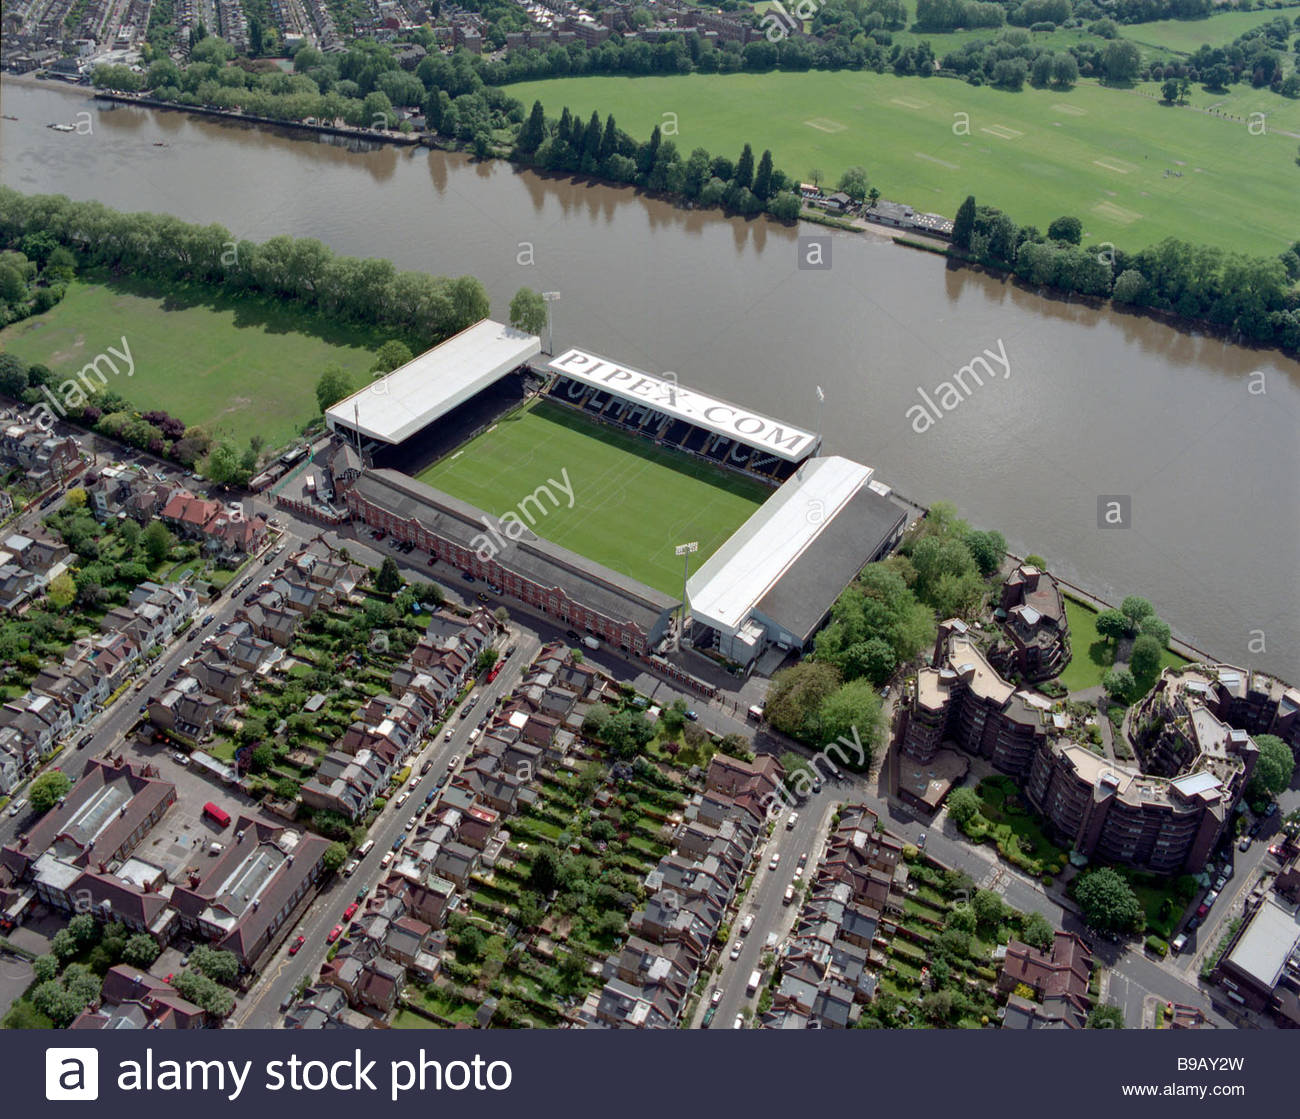 Fulham Stadium High Resolution Stock Photography And Images Alamy